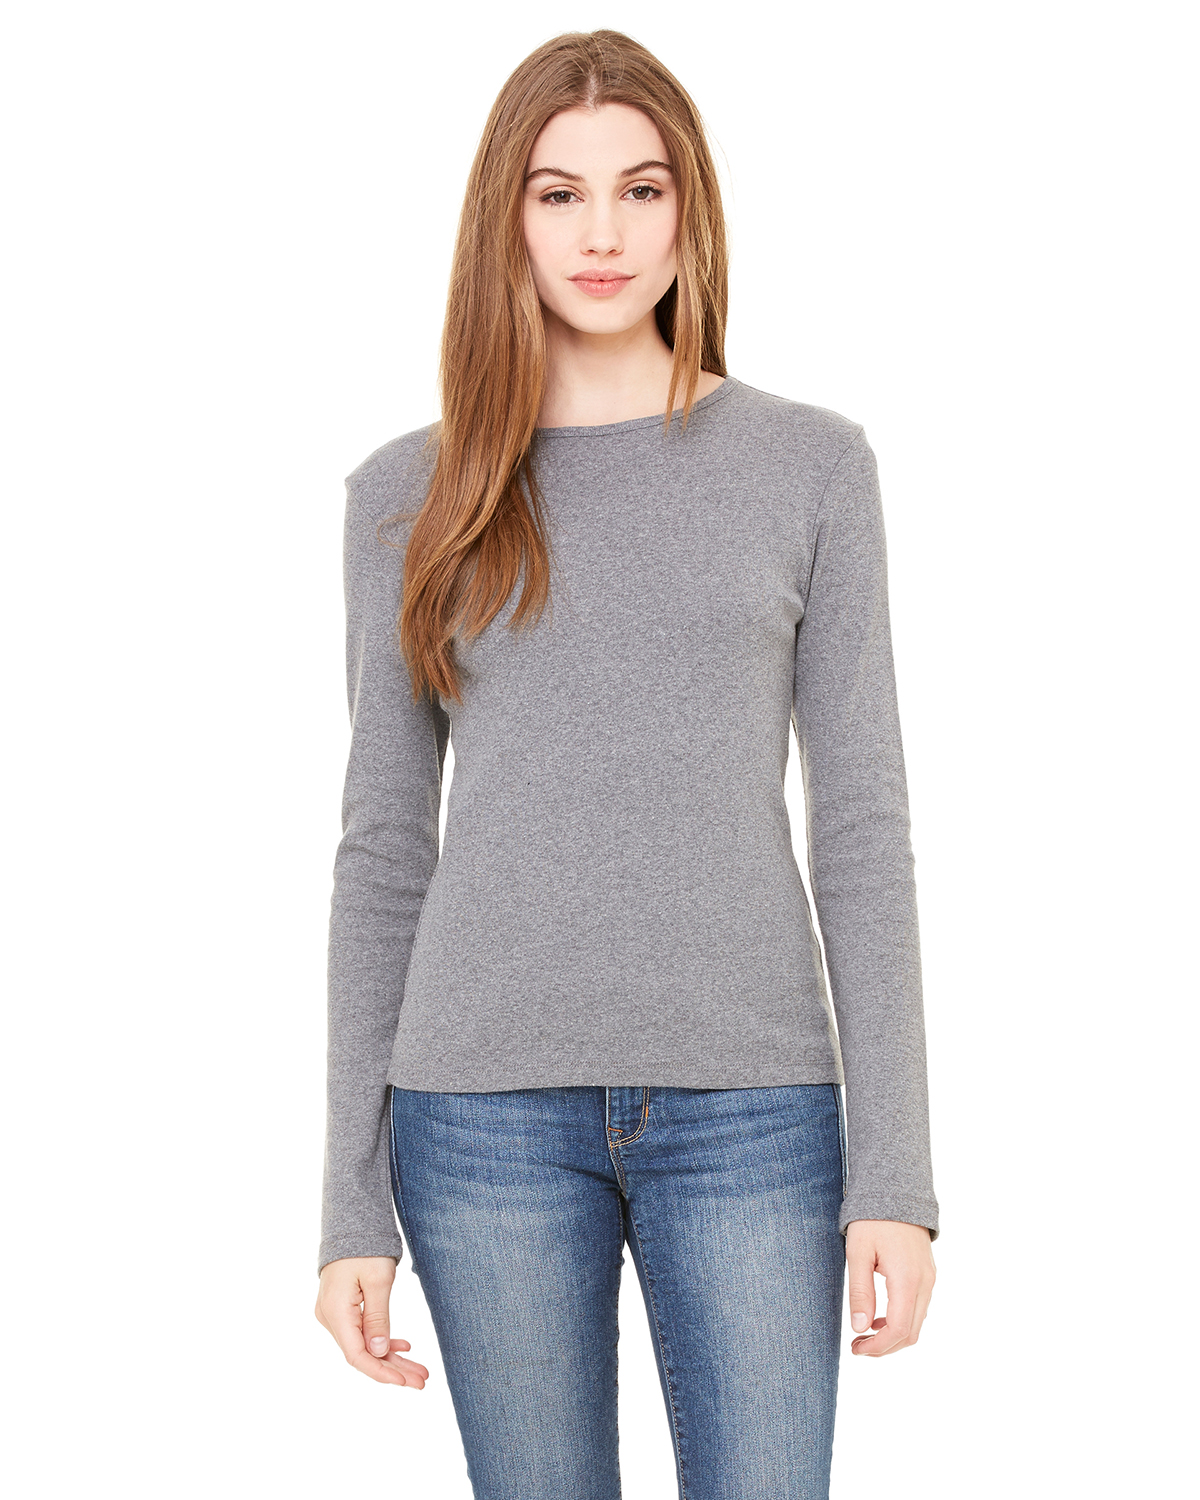 bella 5001 Ladies' 1x1 Rib Long Sleeve T-Shirt